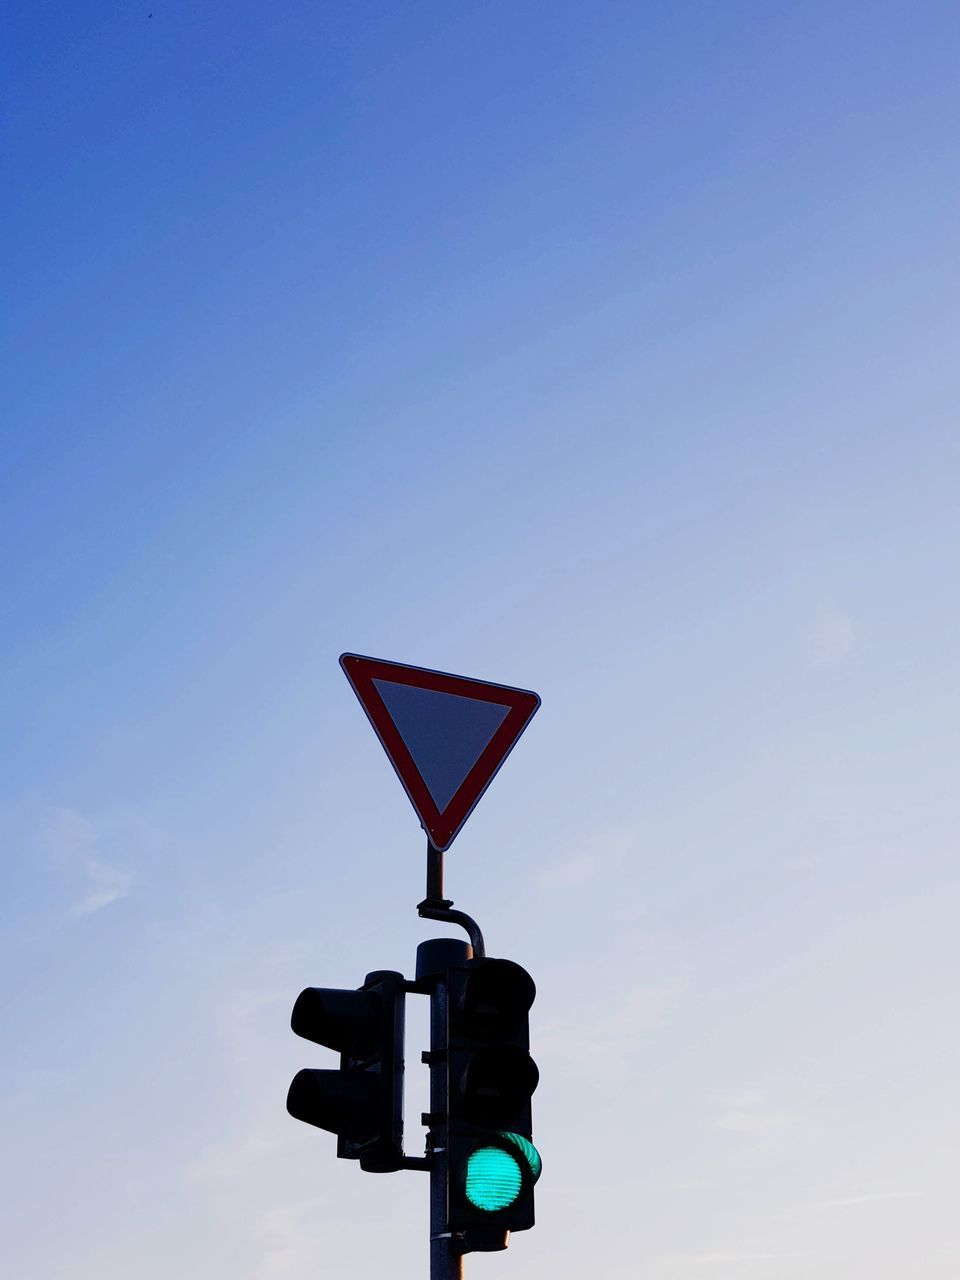 low angle view, guidance, sky, copy space, red light, outdoors, no people, railway signal, red, day, blue, stoplight, road sign